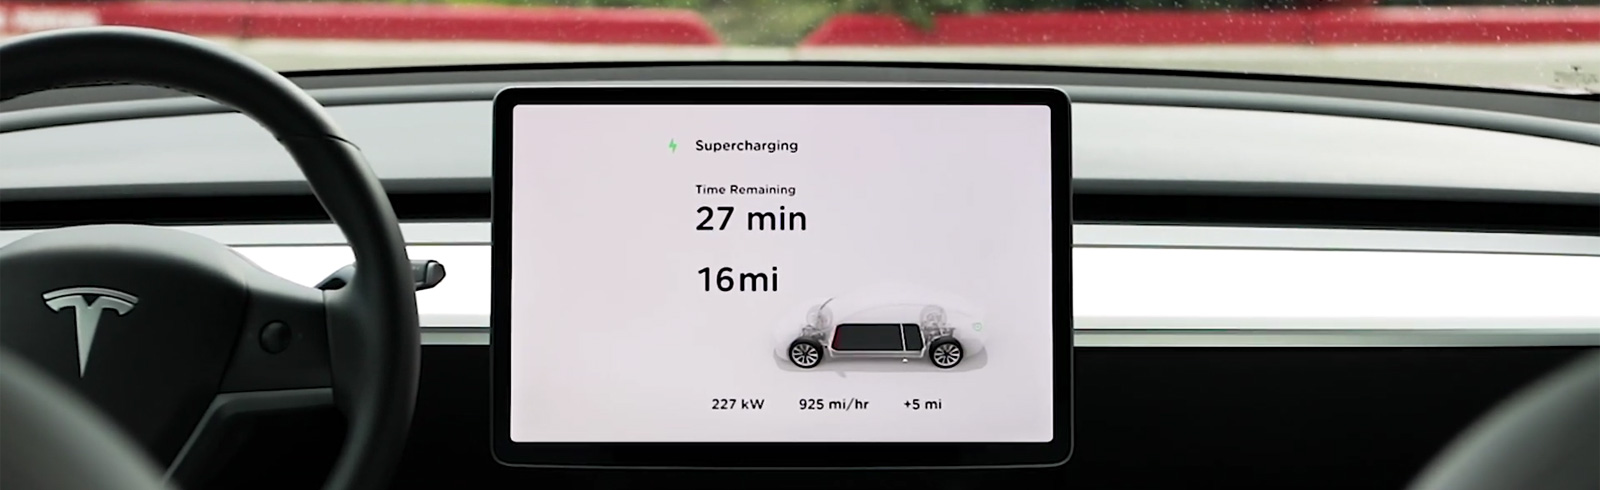 Tesla Supercharger V3 is official with 250 kW peak power output